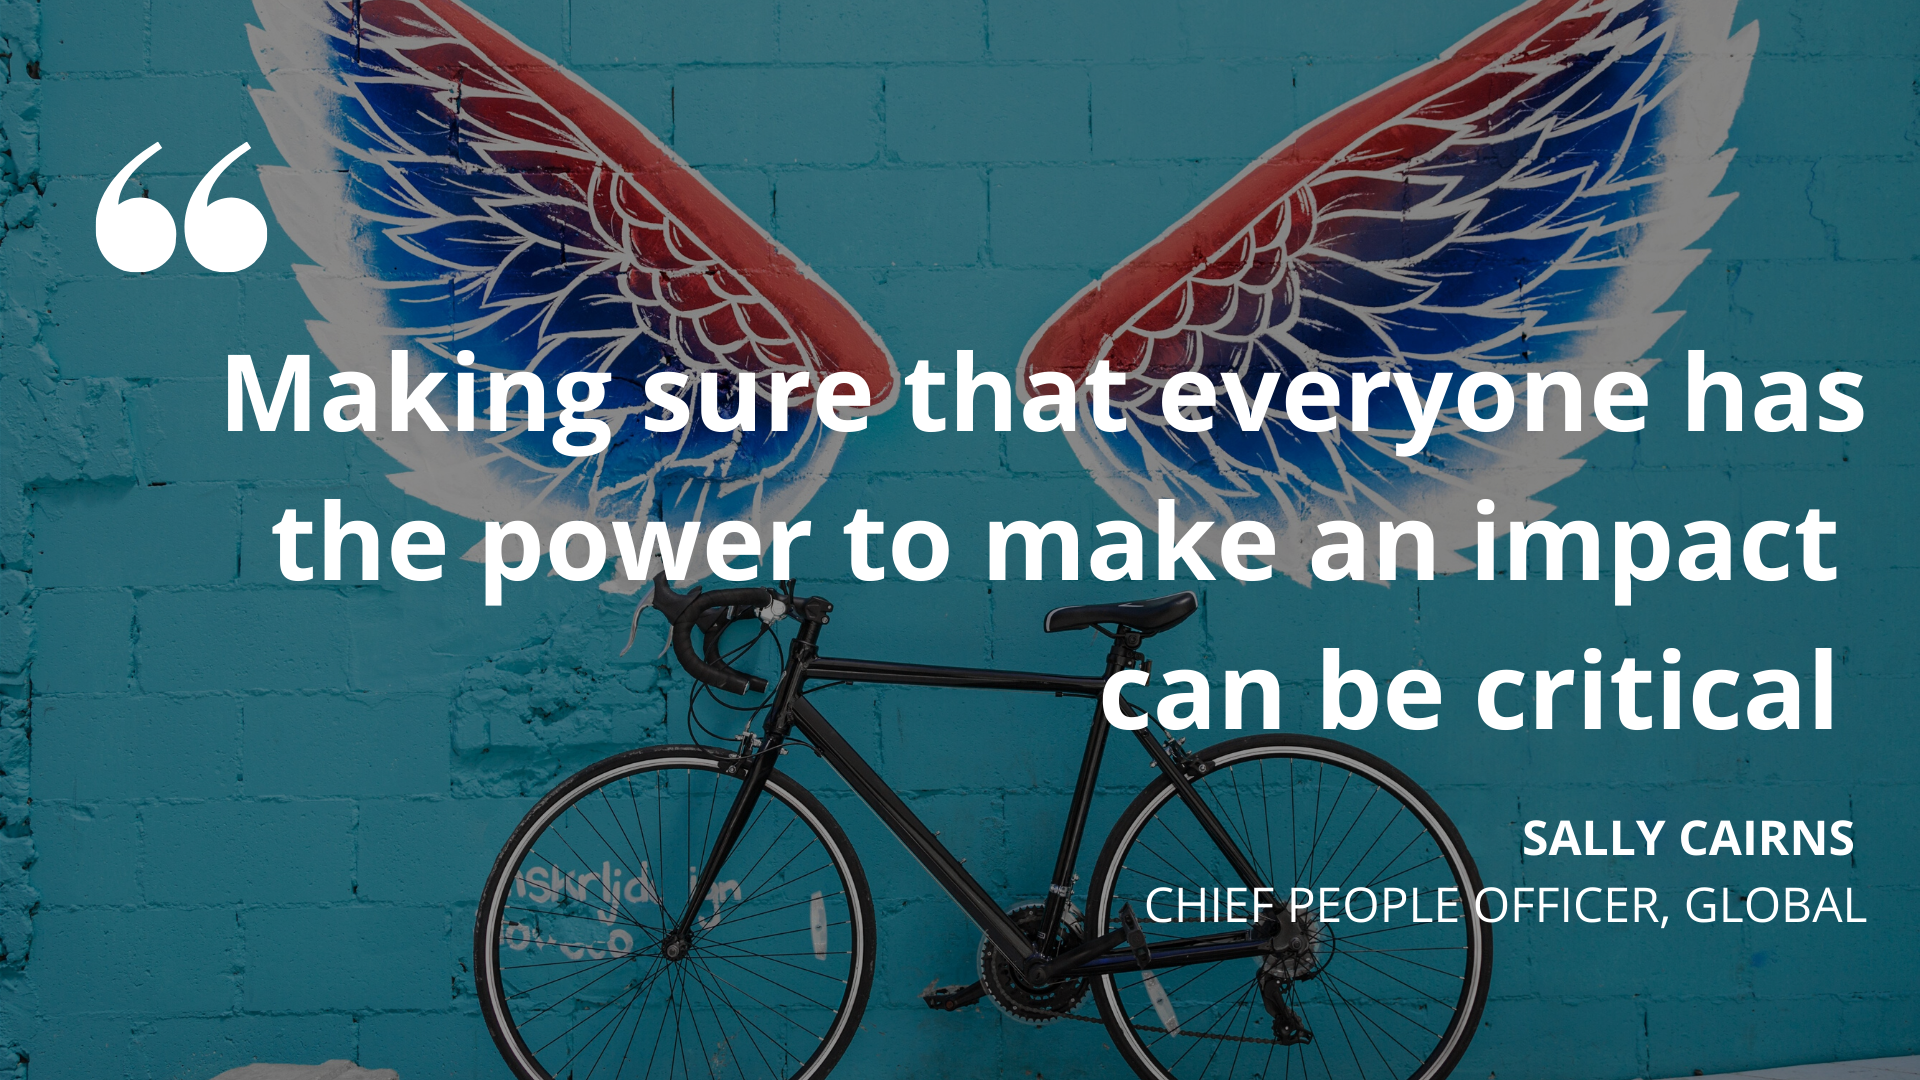 'Making sure that everyone has the power to make an impact can be critical.' Sally Cairns, Chief People Officer, Global